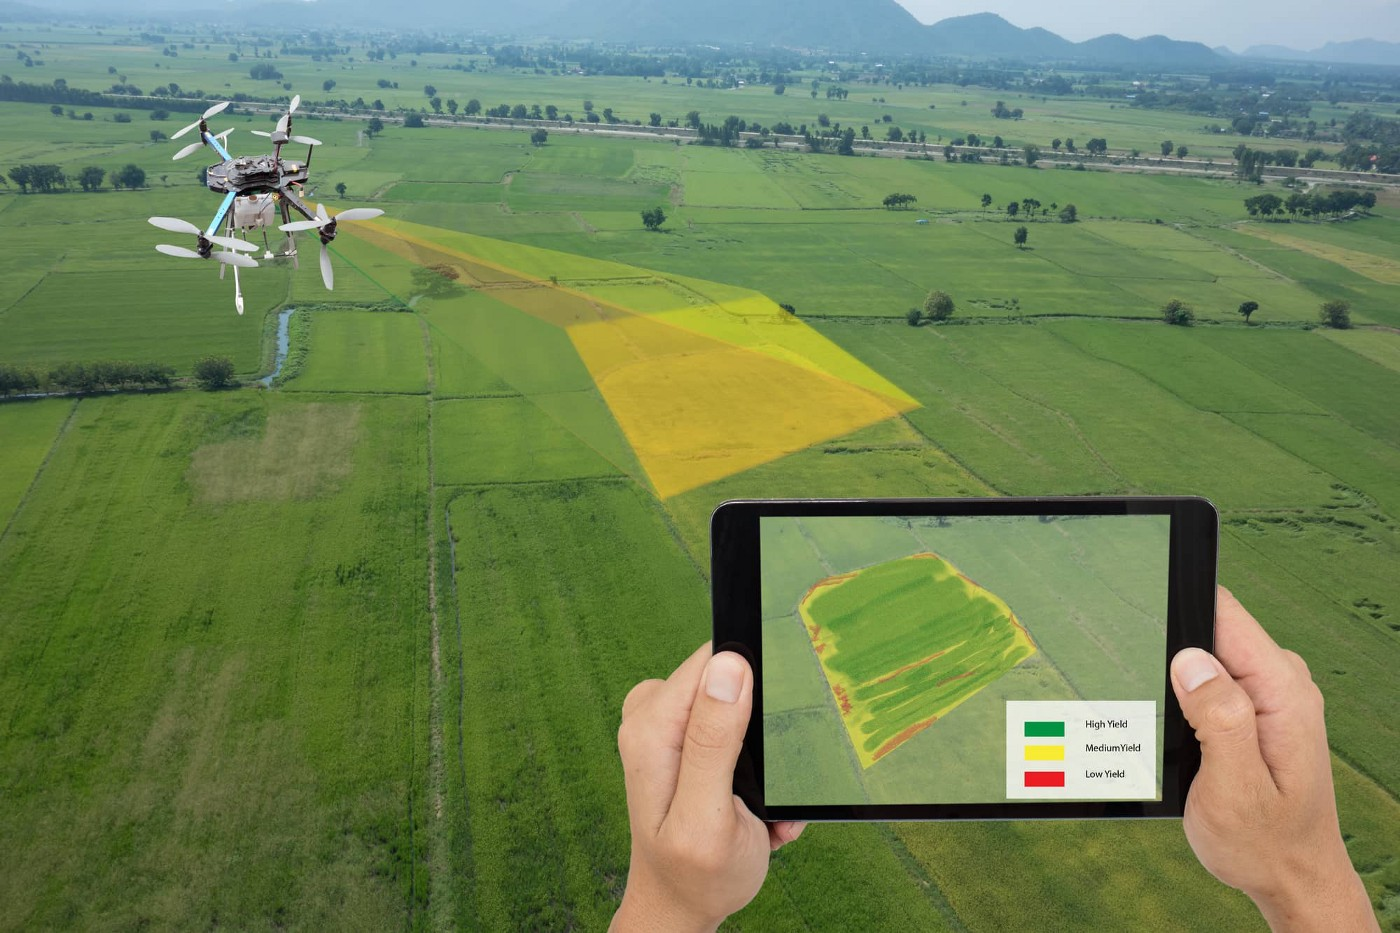 A drone uses technology to scan farmland.